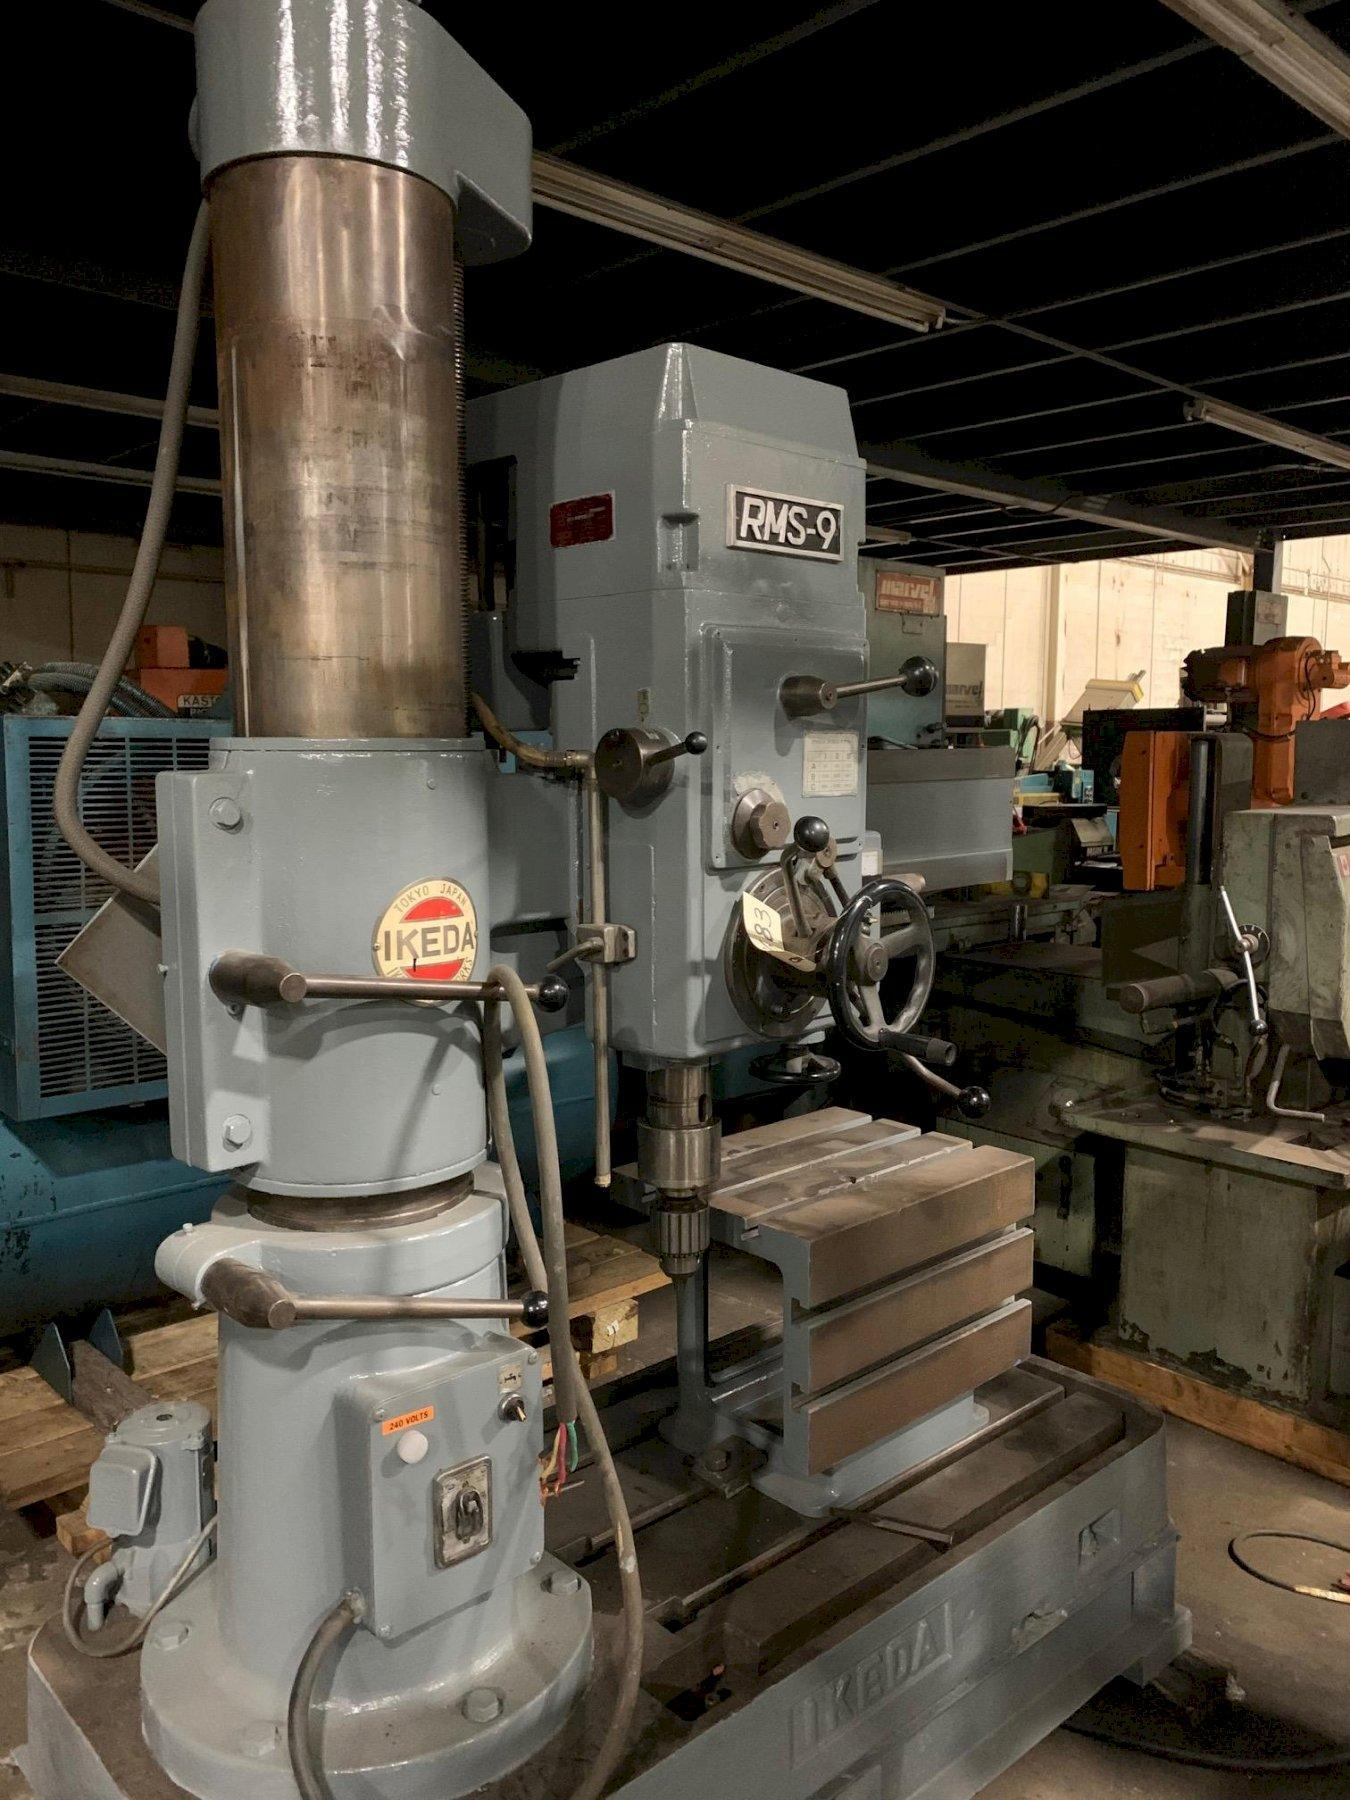 "USED IKEDA MODEL RMS-9 36"" X 9"" RADIAL ARM DRILL PRESS, Year 1977, Stock # 10683"